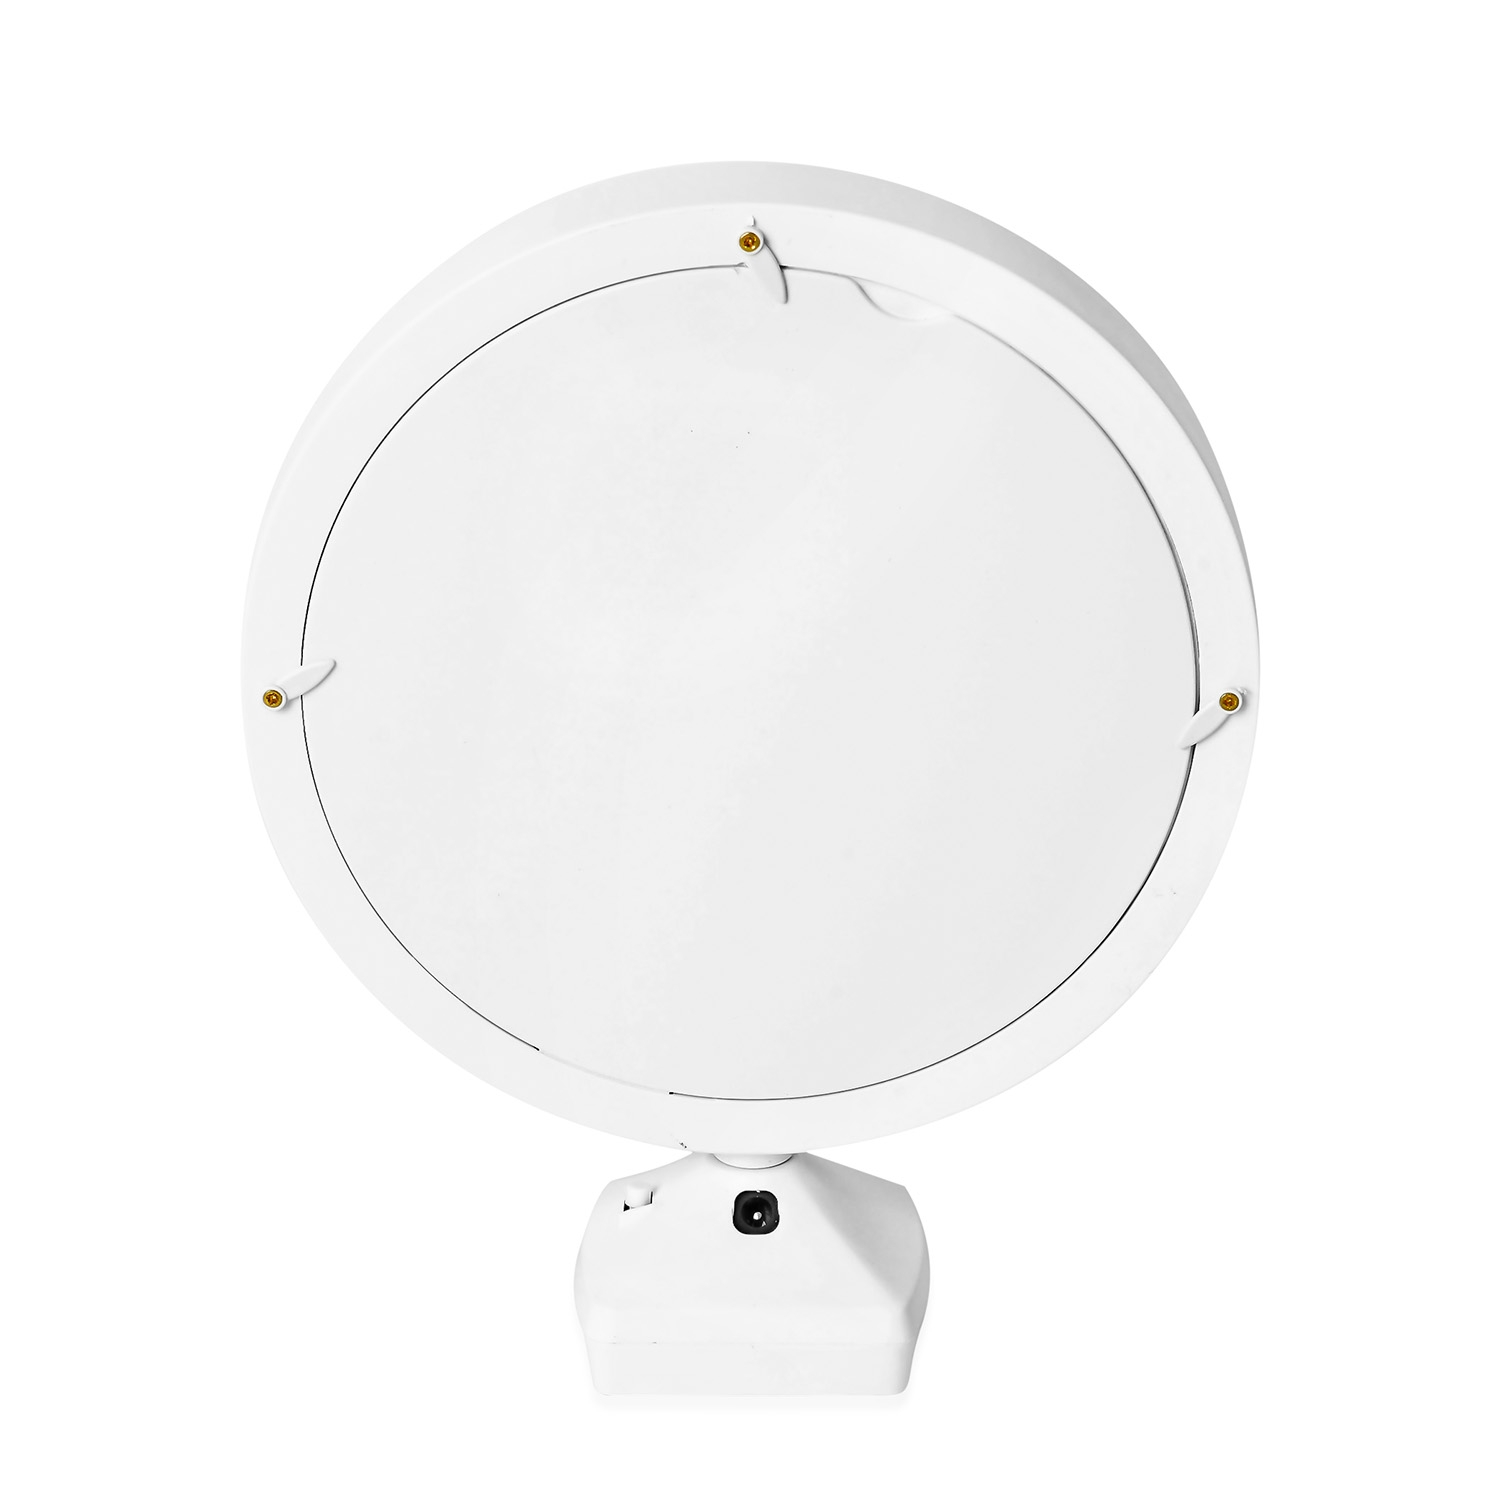 Led Unterbauleuchte Rund Batterie White Glass Round Shape Led Photo Frame Mirror 3xaaa